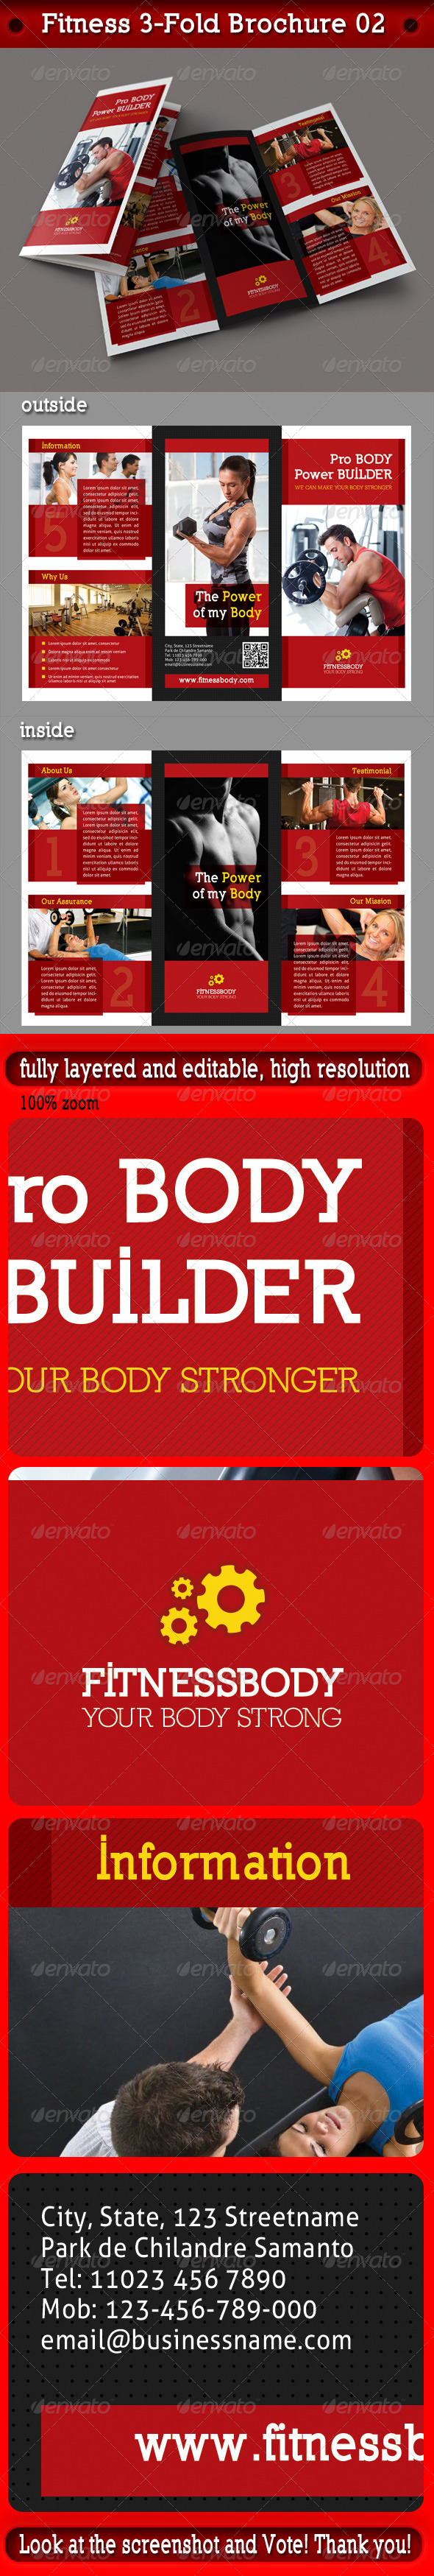 Fitness 3-Fold Brochure 02 - Corporate Brochures